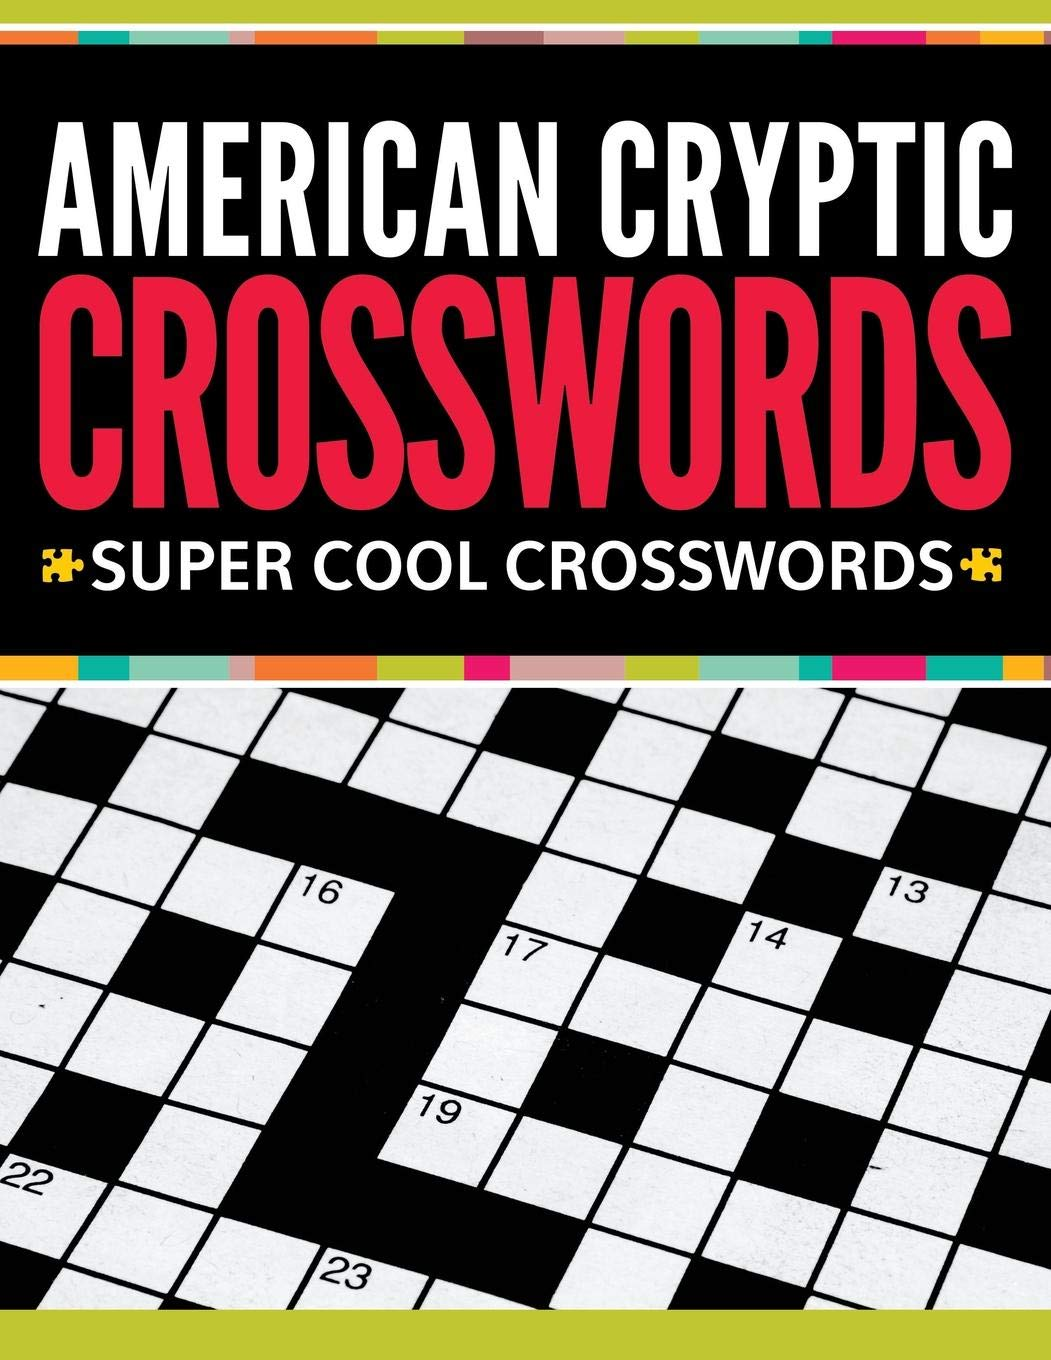 photograph relating to Printable Cryptic Crosswords known as American Cryptic Crosswords: Tremendous Great Crosswords: Instant